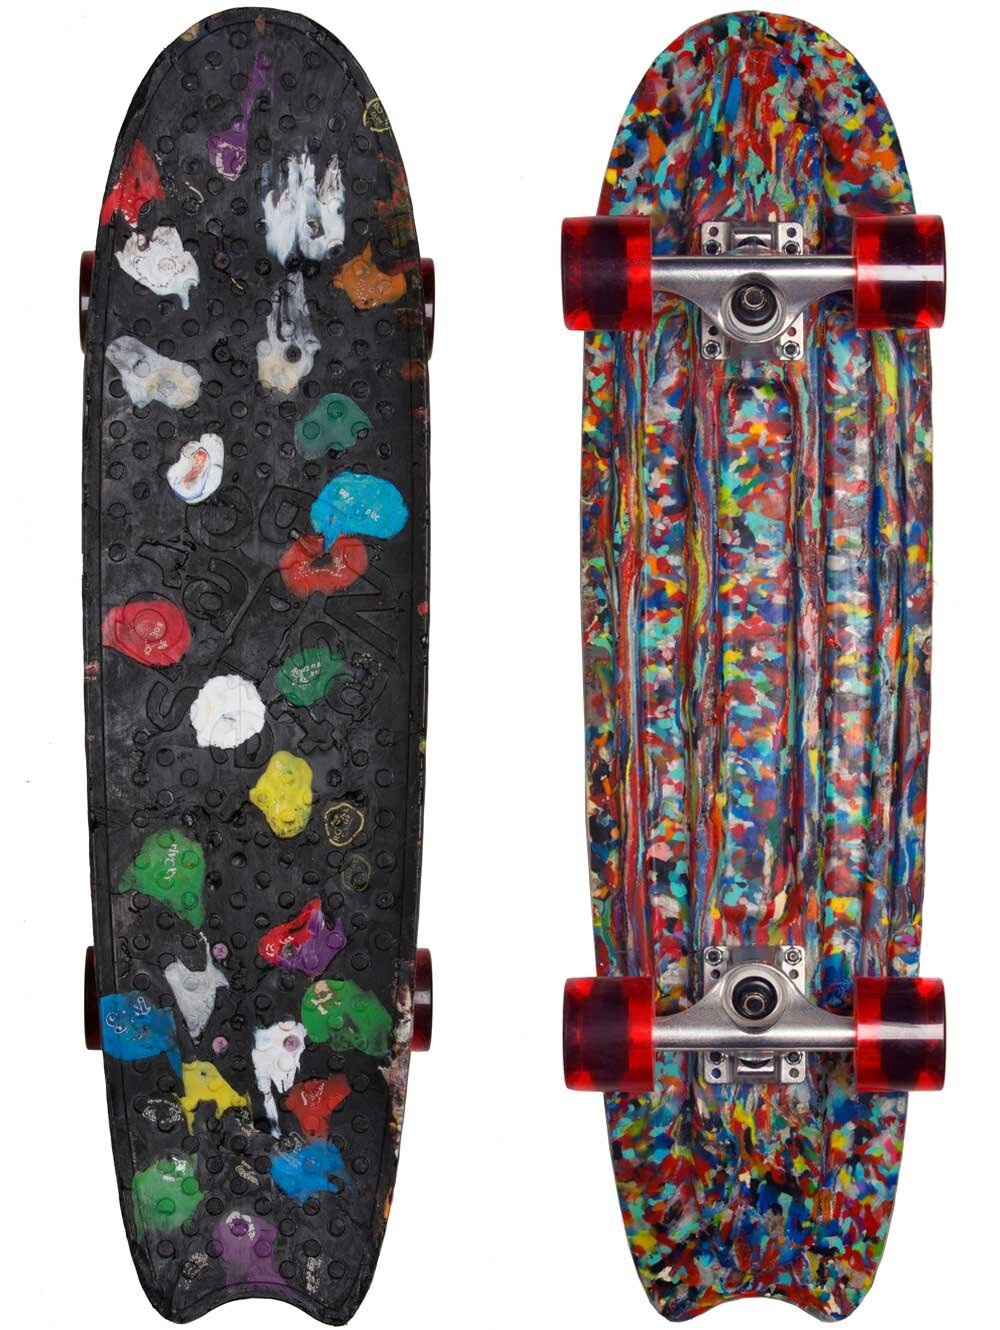 Wasteboards   This skateboard by Wasteboards is produced in Amsterdam made of 100% recycled plastics, and wheels will be in the near future.   https://wasteboards.com/